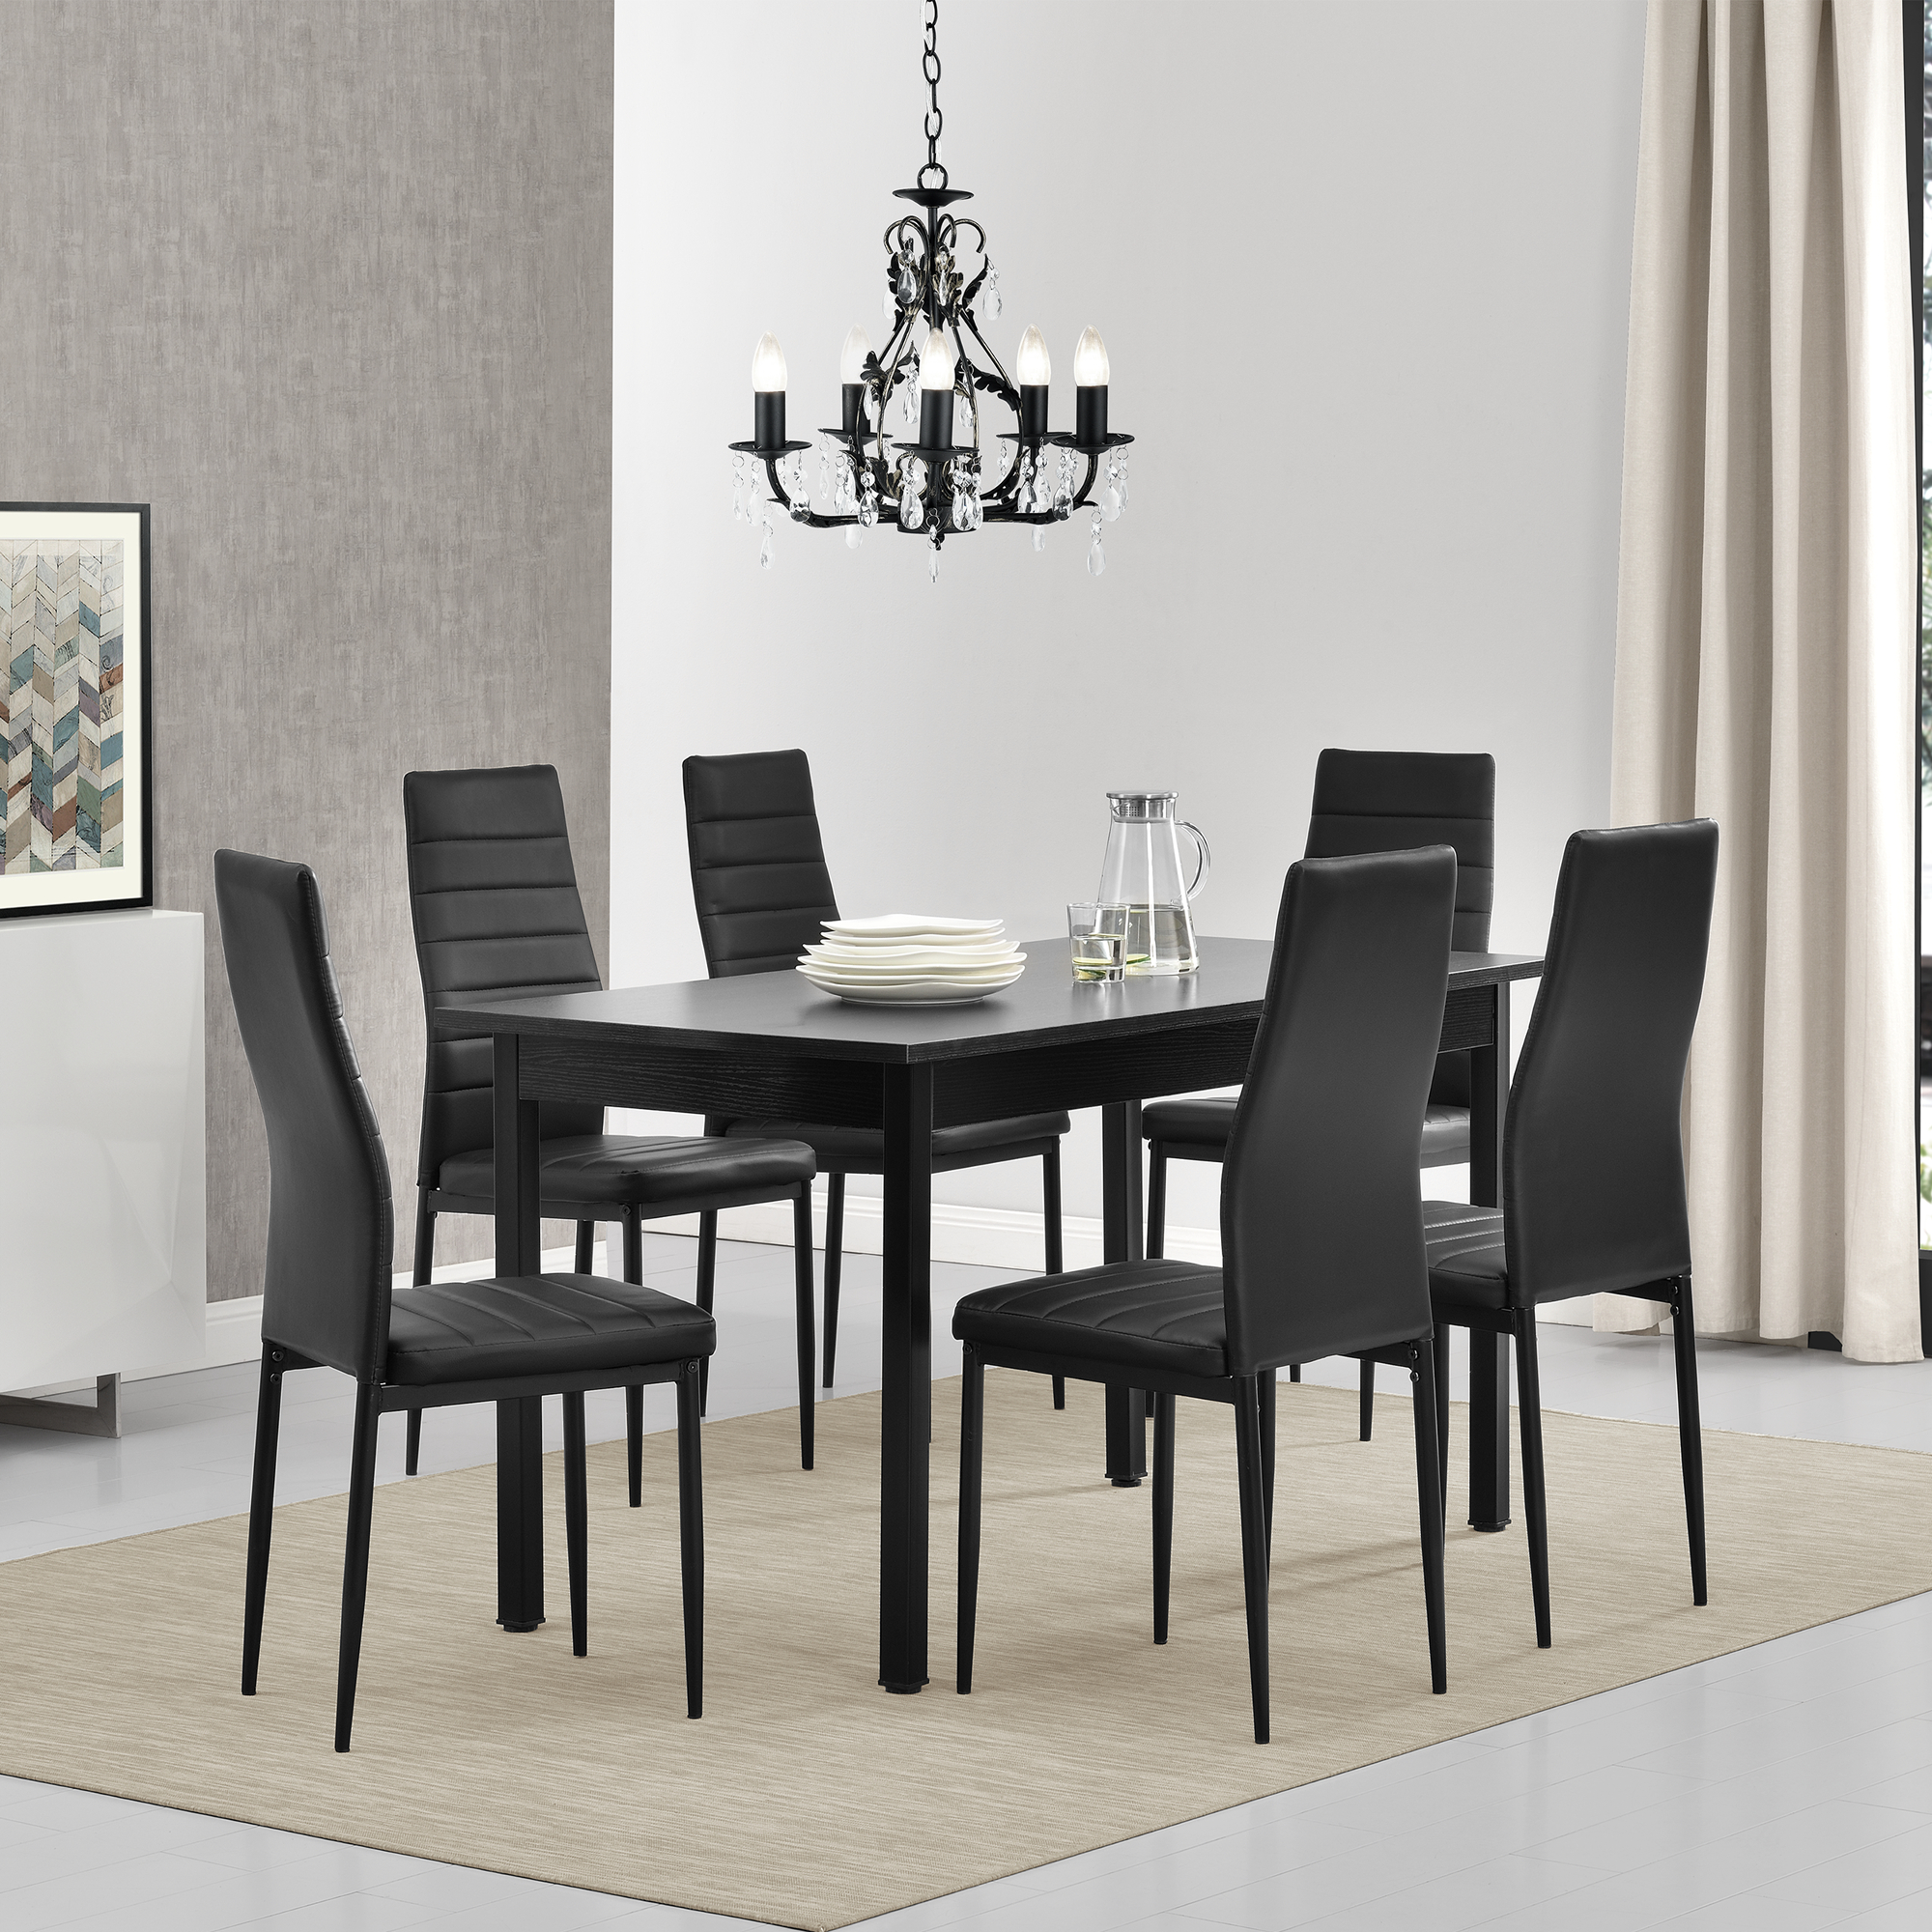 esstisch mit 6 st hlen schwarz 140x60cm k chentisch esszimmertisch ebay. Black Bedroom Furniture Sets. Home Design Ideas